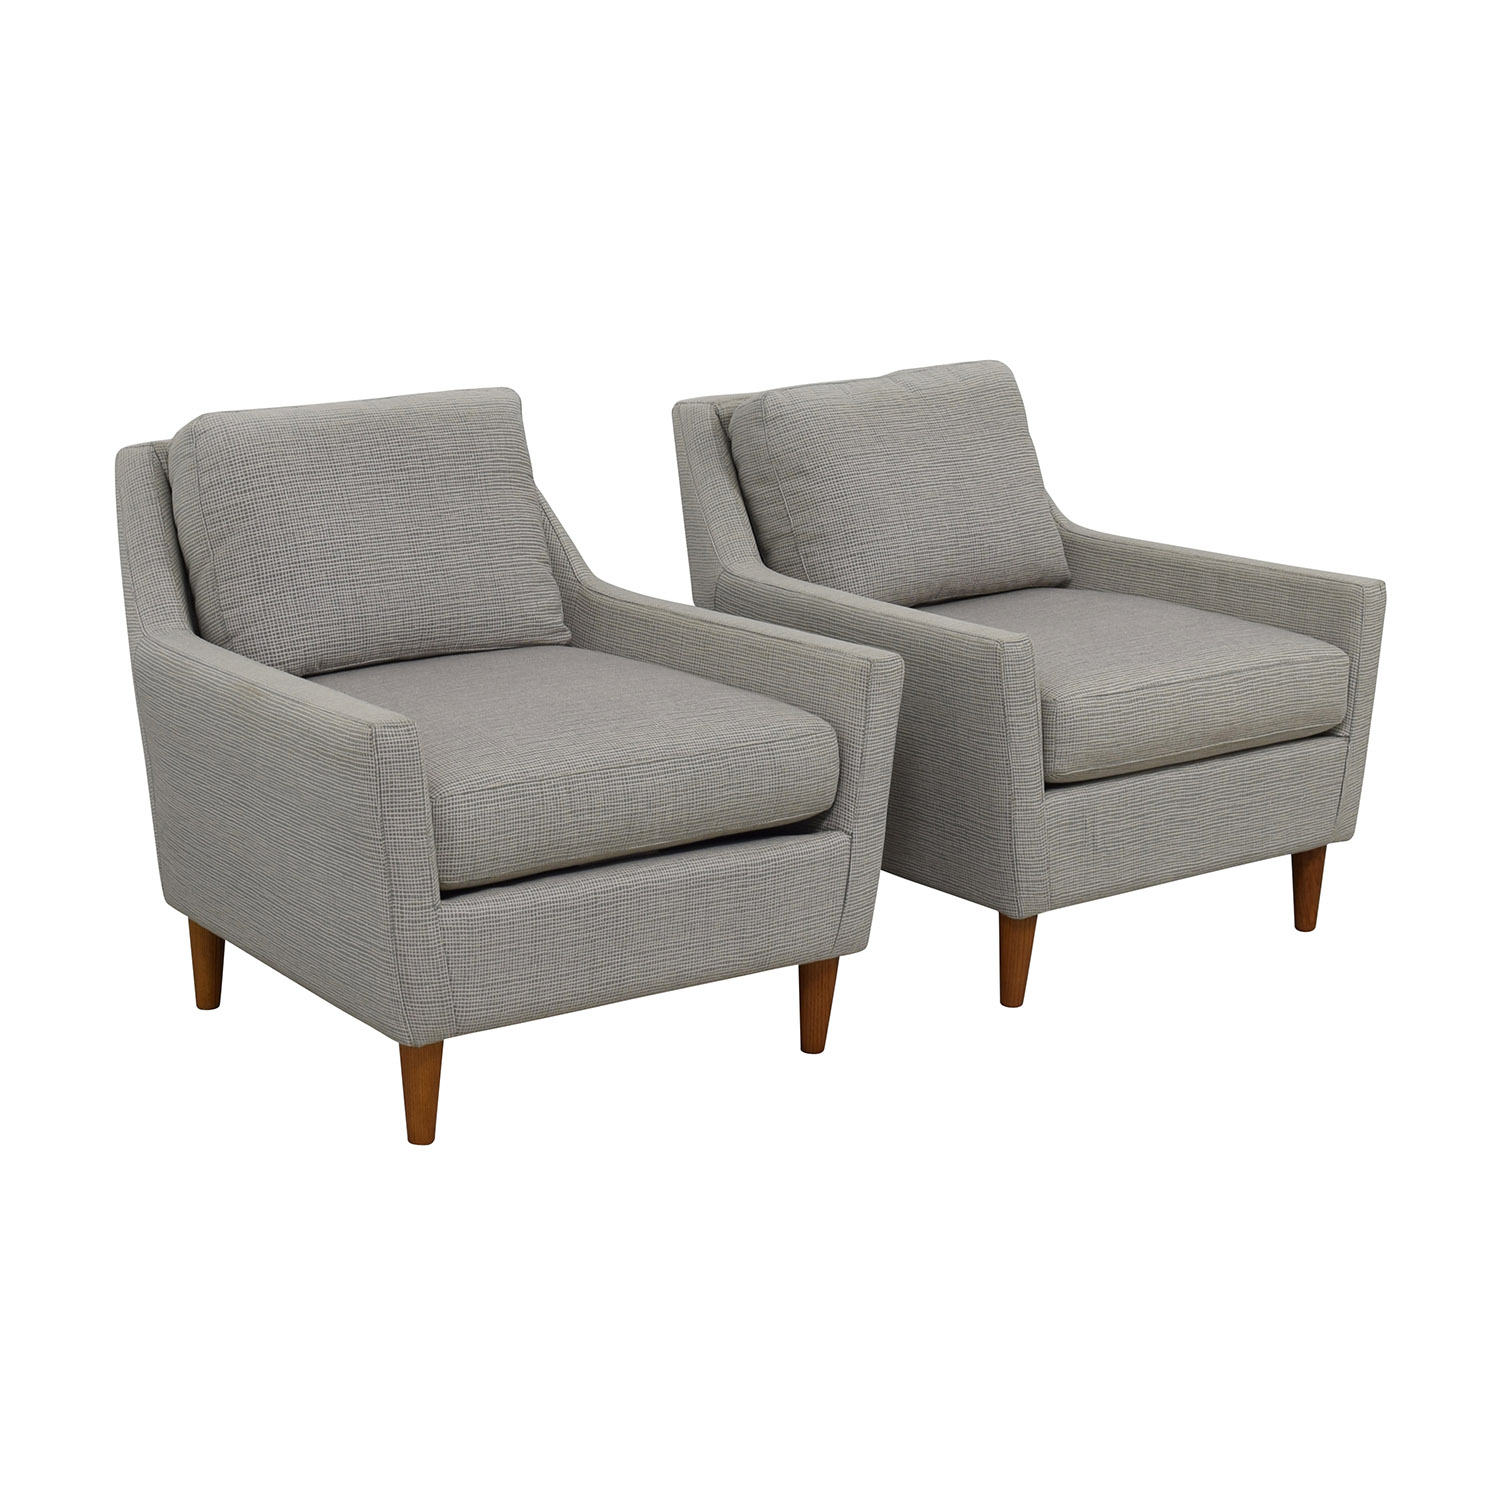 used west elm furniture.  Used Buy West Elm Everett Grey Arm Chairs Online Intended Used Furniture T